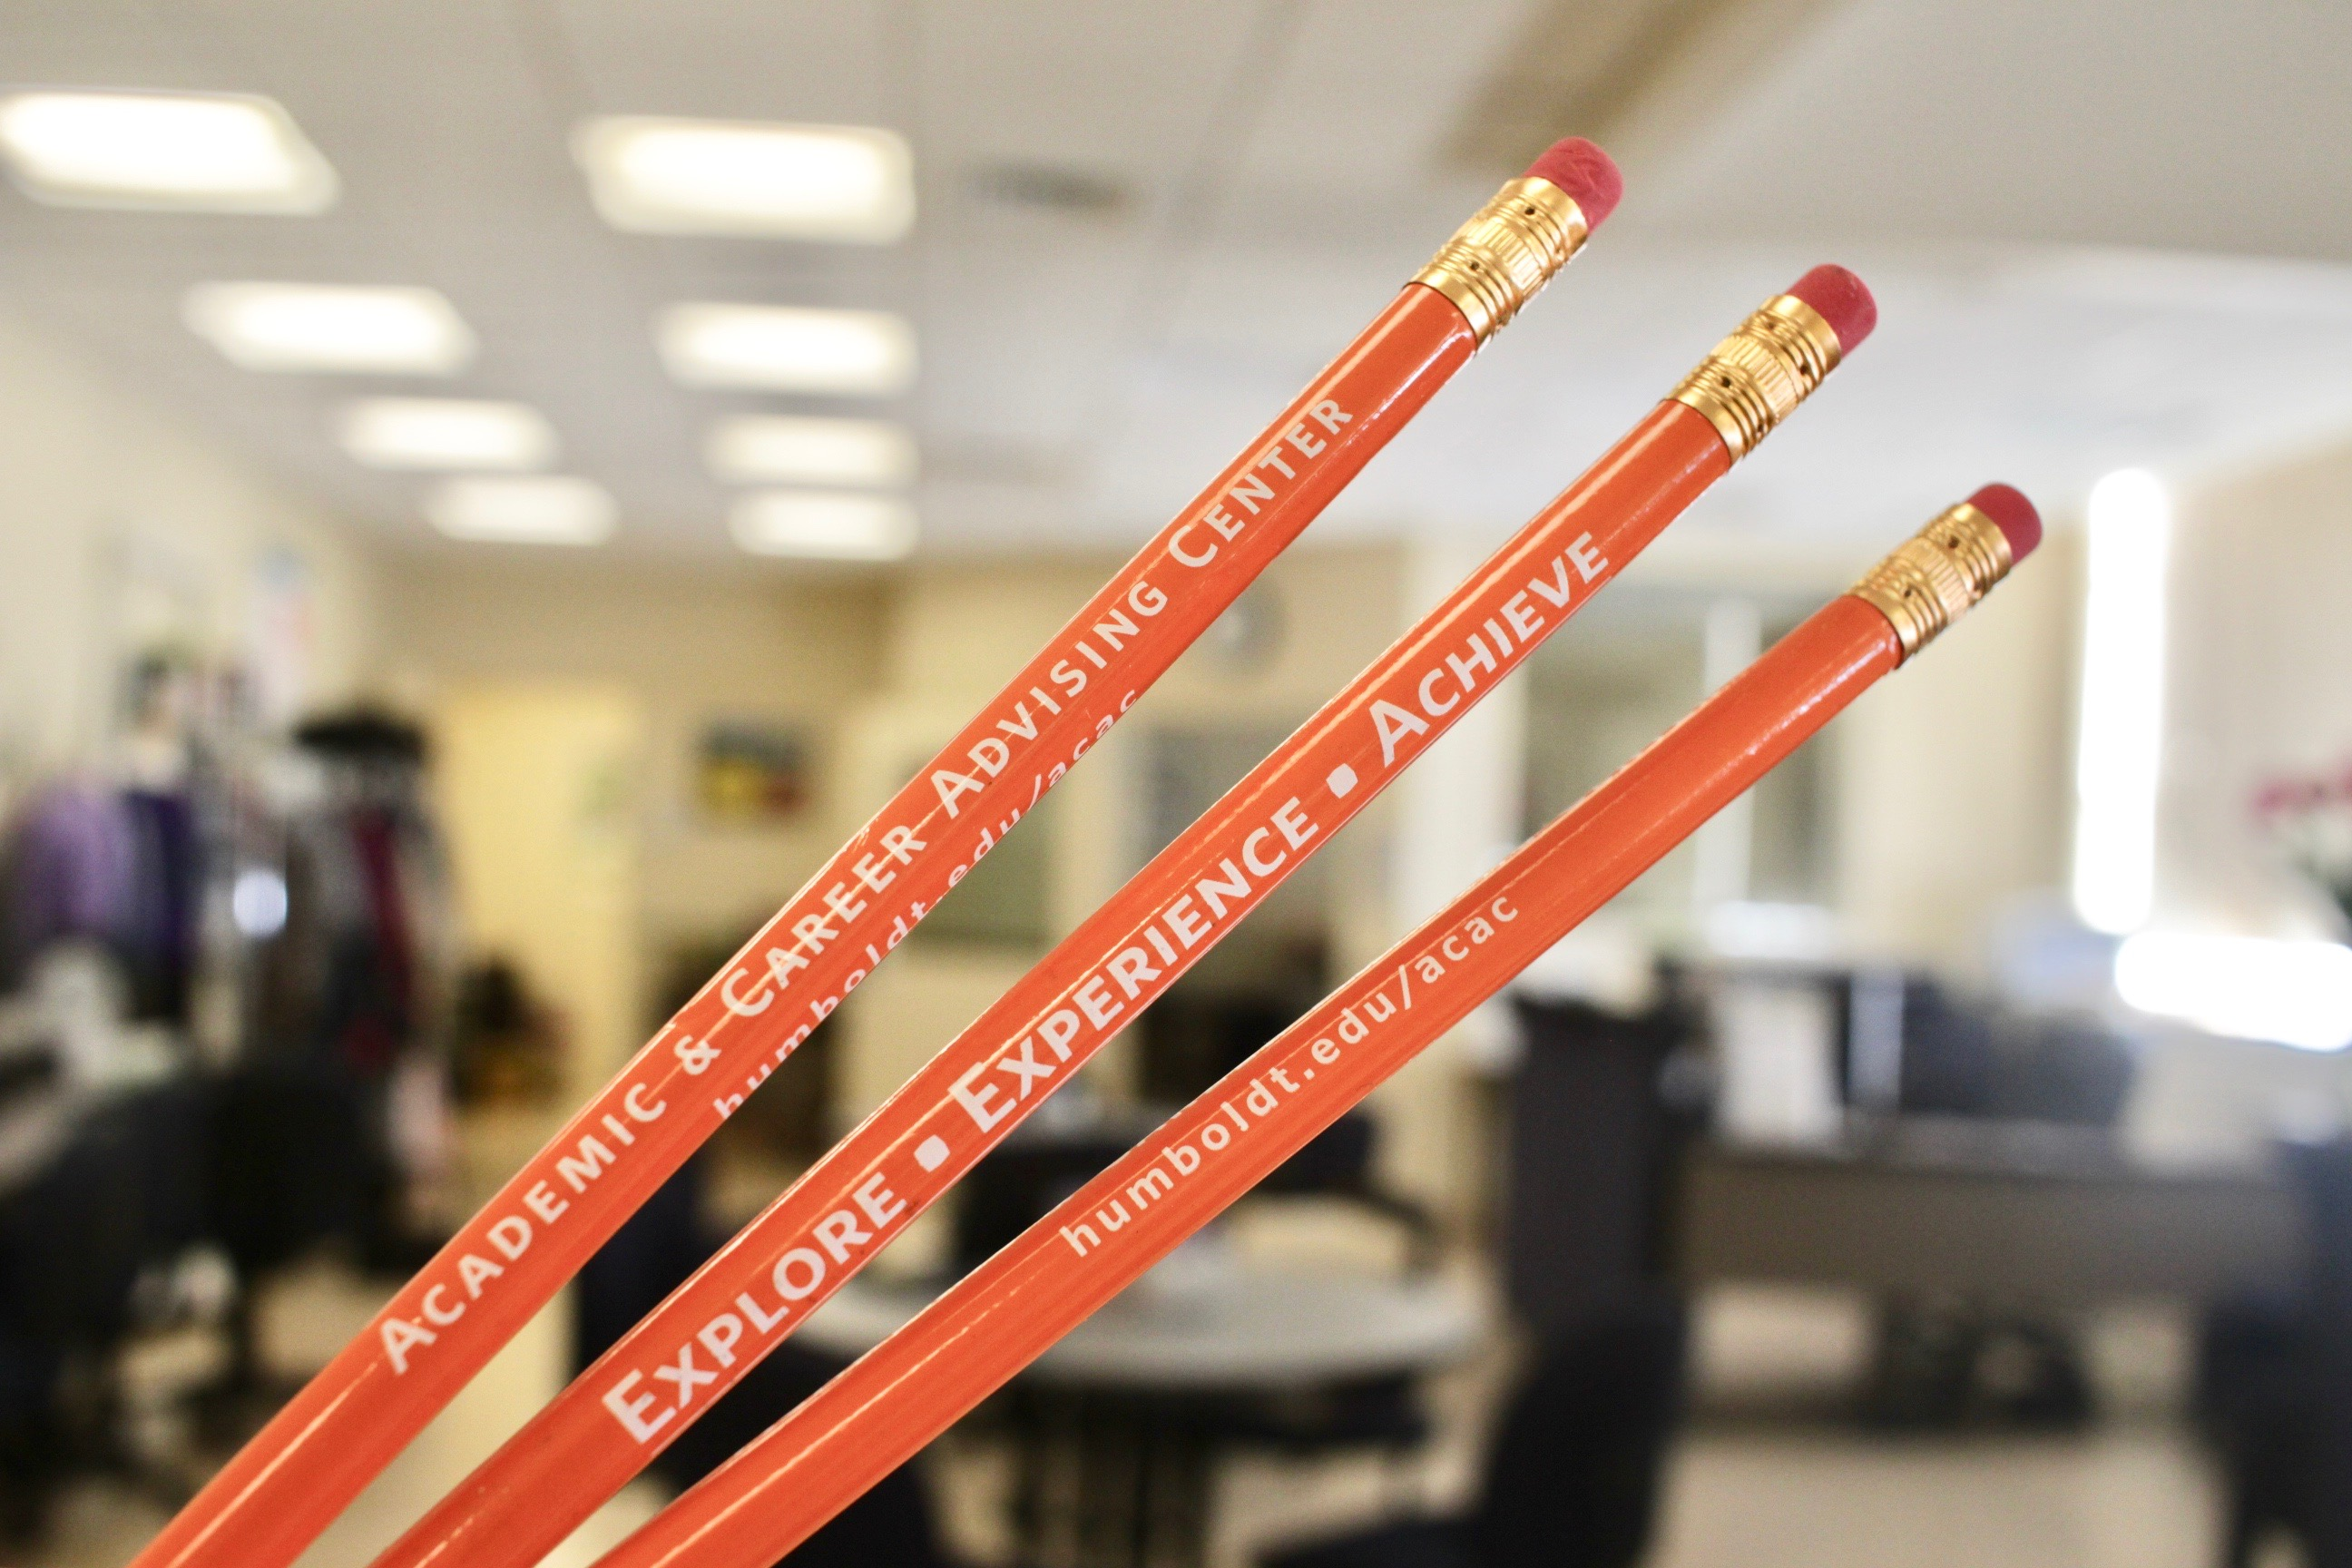 Photo of our center with our pencils that have our phone number, center name, and logo